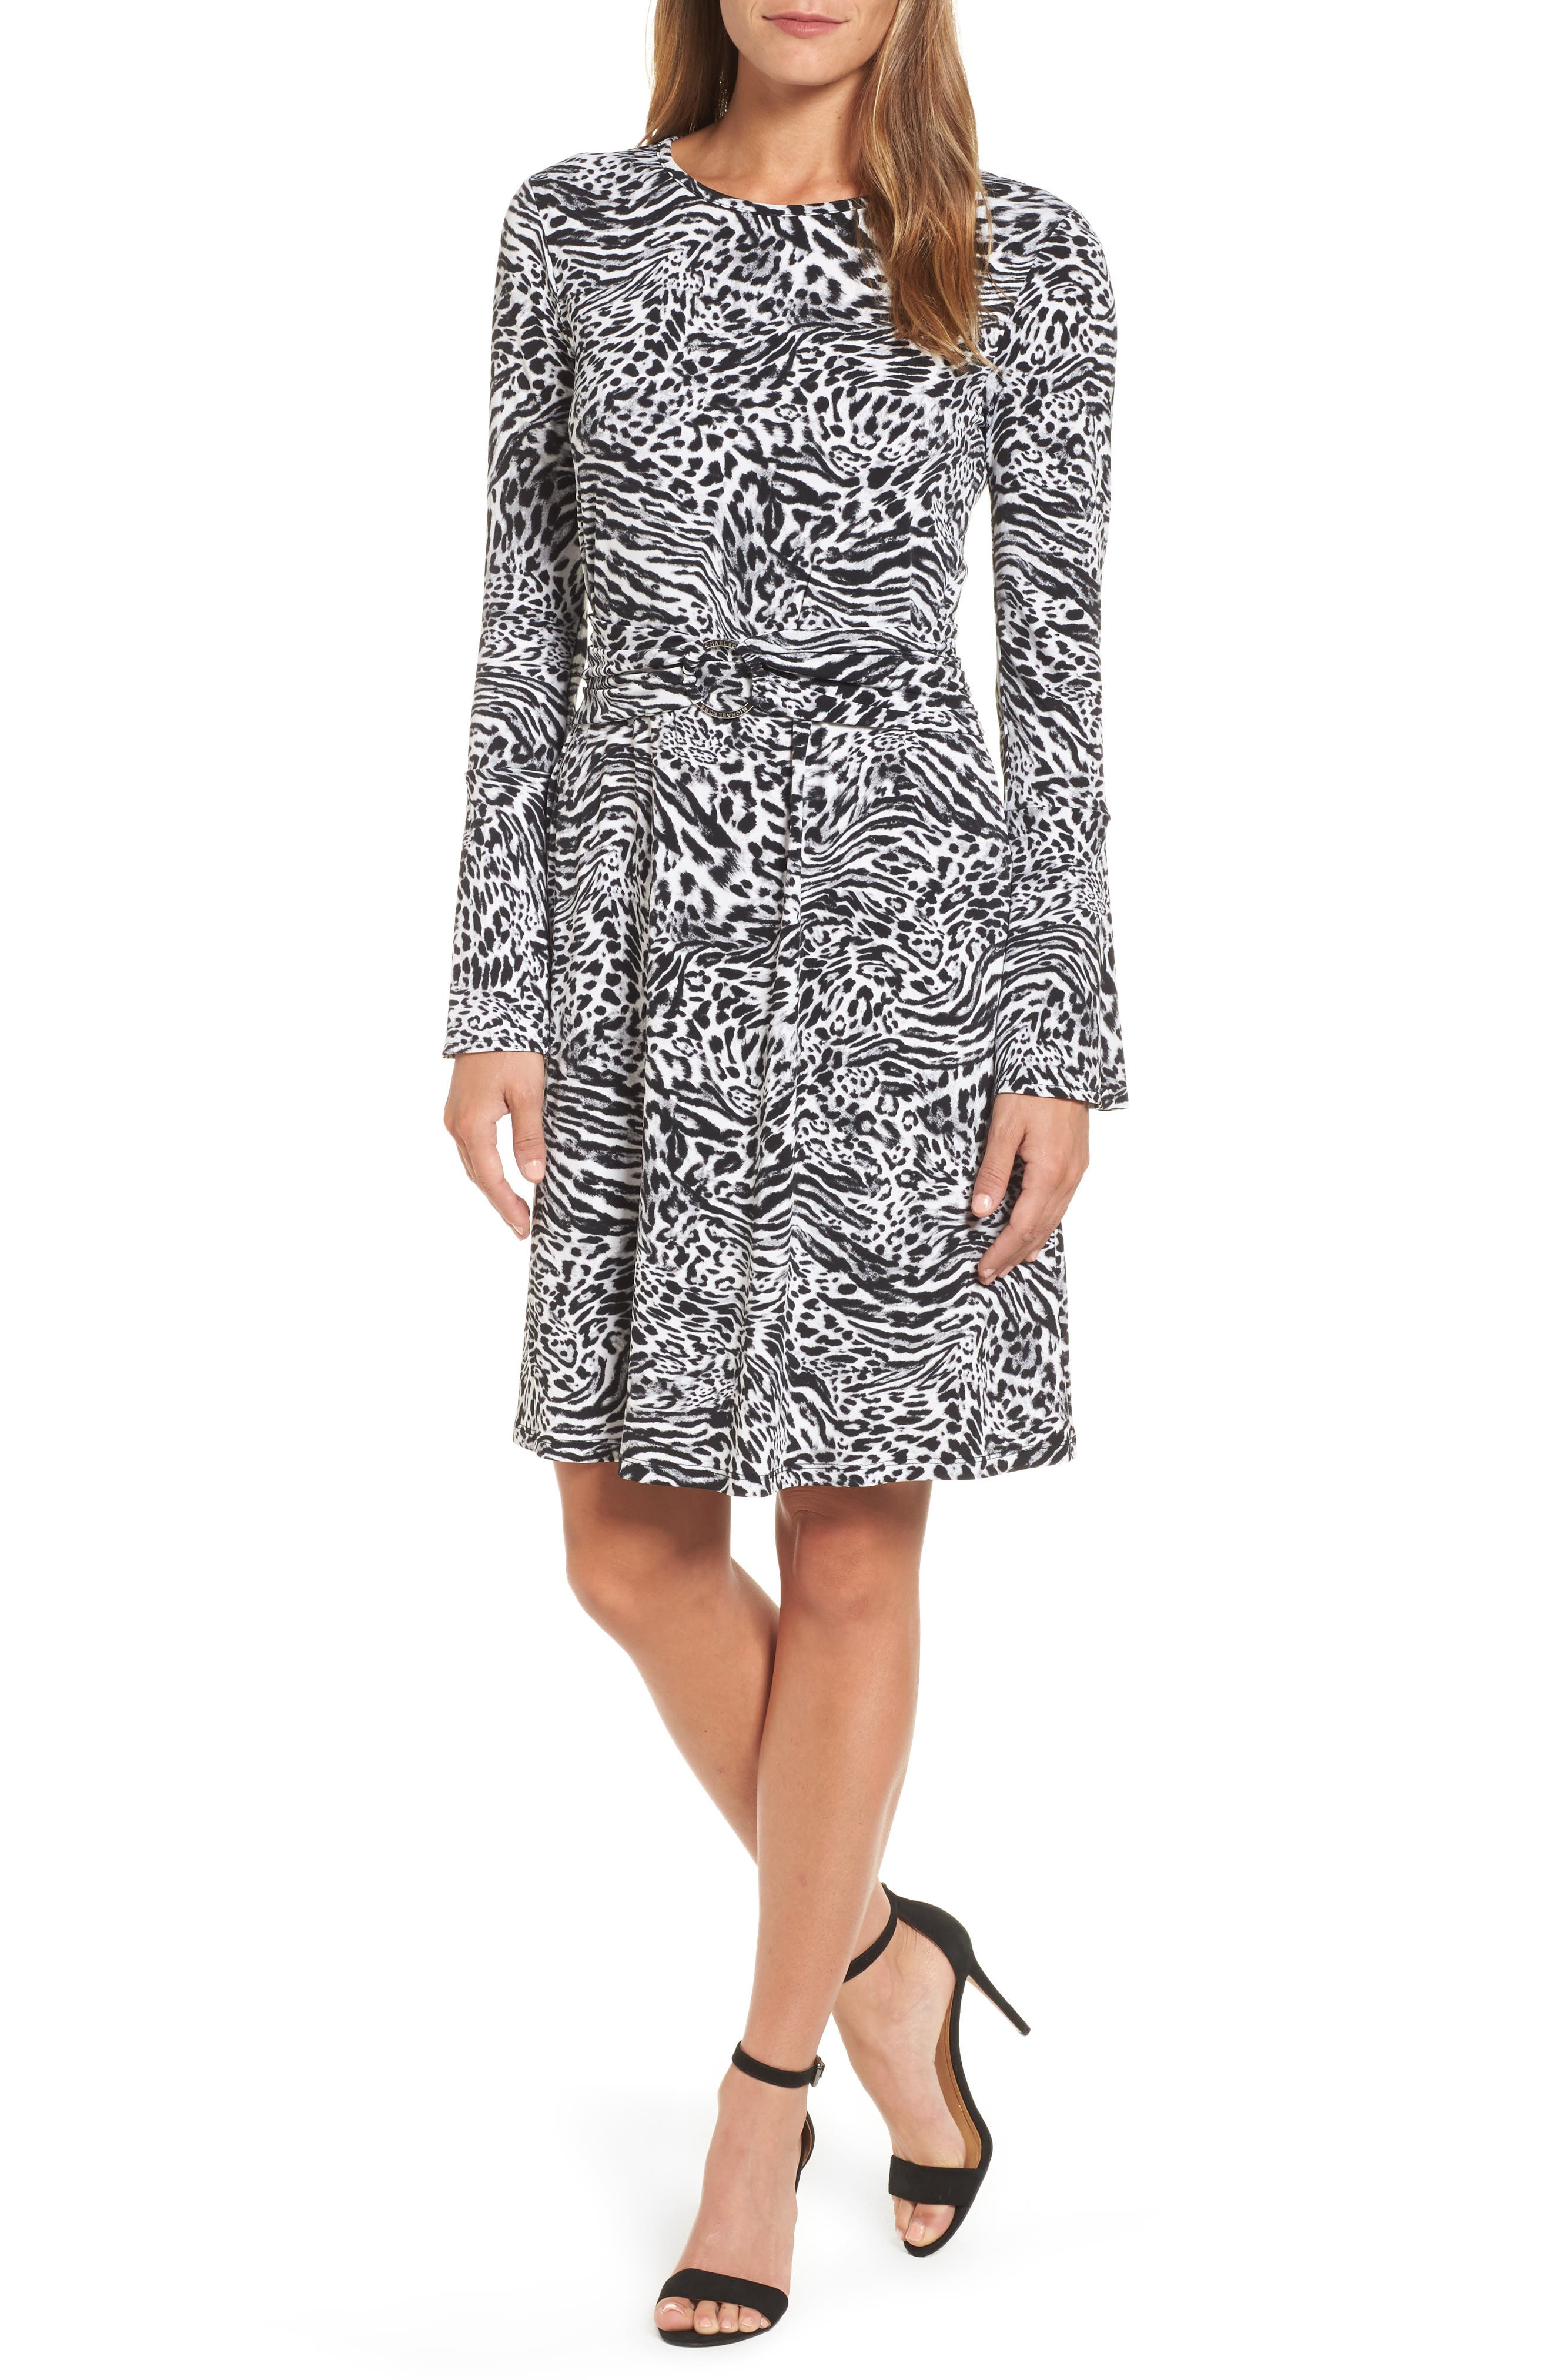 Main Image - MICHAEL Michael Kors Big Cat A-Line Dress